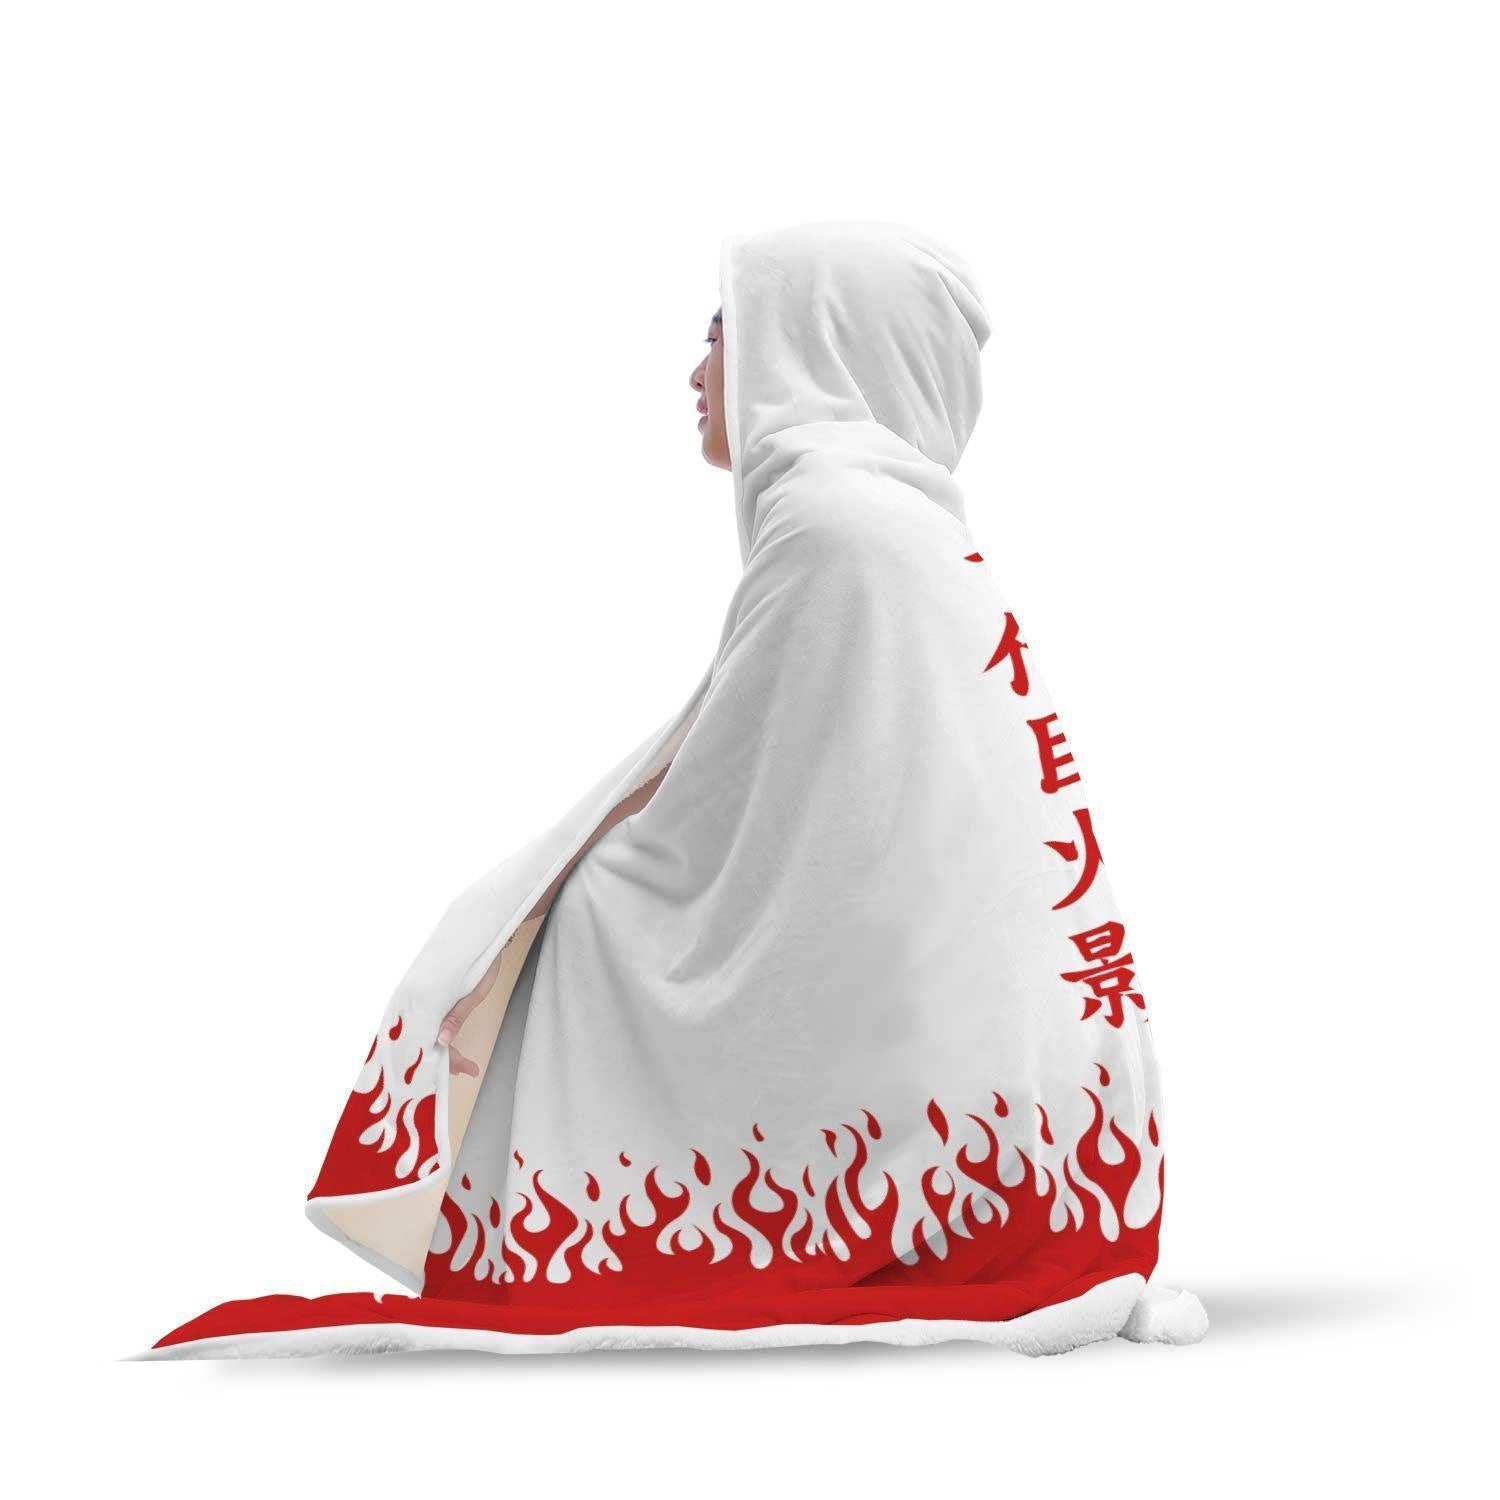 Awesome Naruto Hokage Cloak Inspired Hooded Blanket - Get Set Style Metro